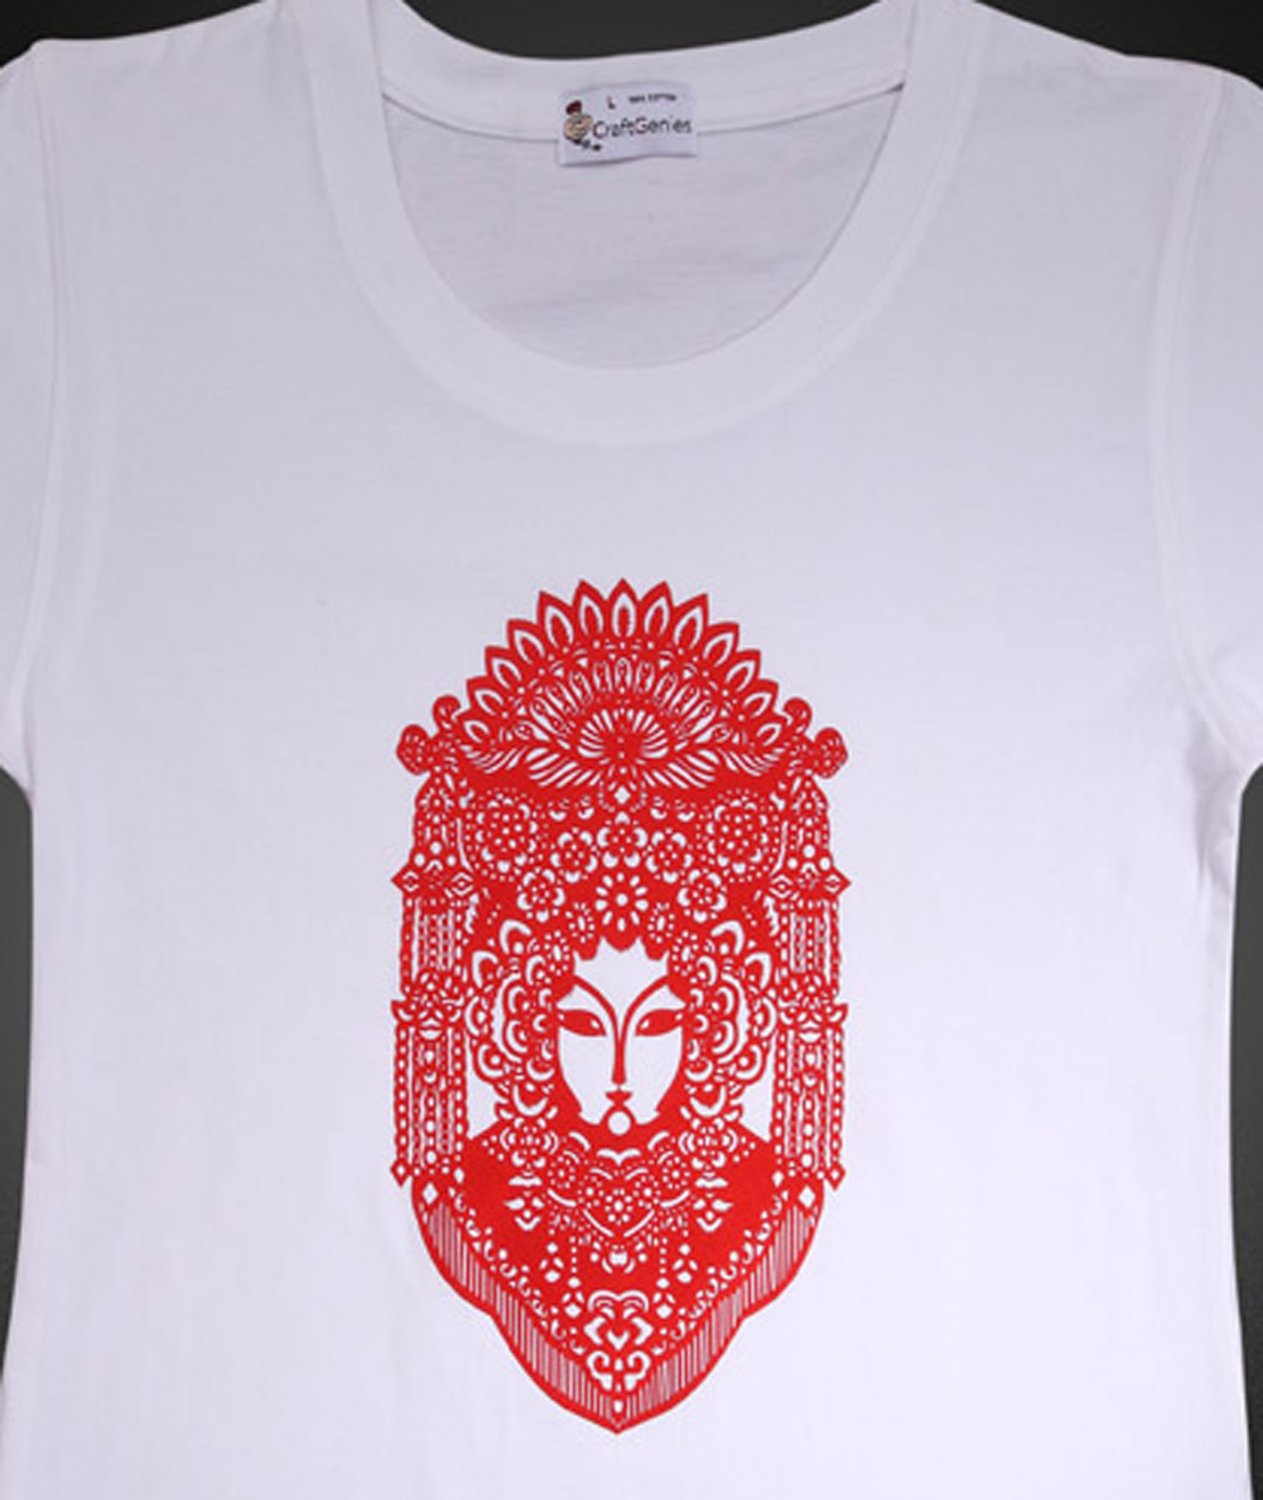 Chinese Heritage Designed T Shirt For Women - Brand New    (Women's Large)